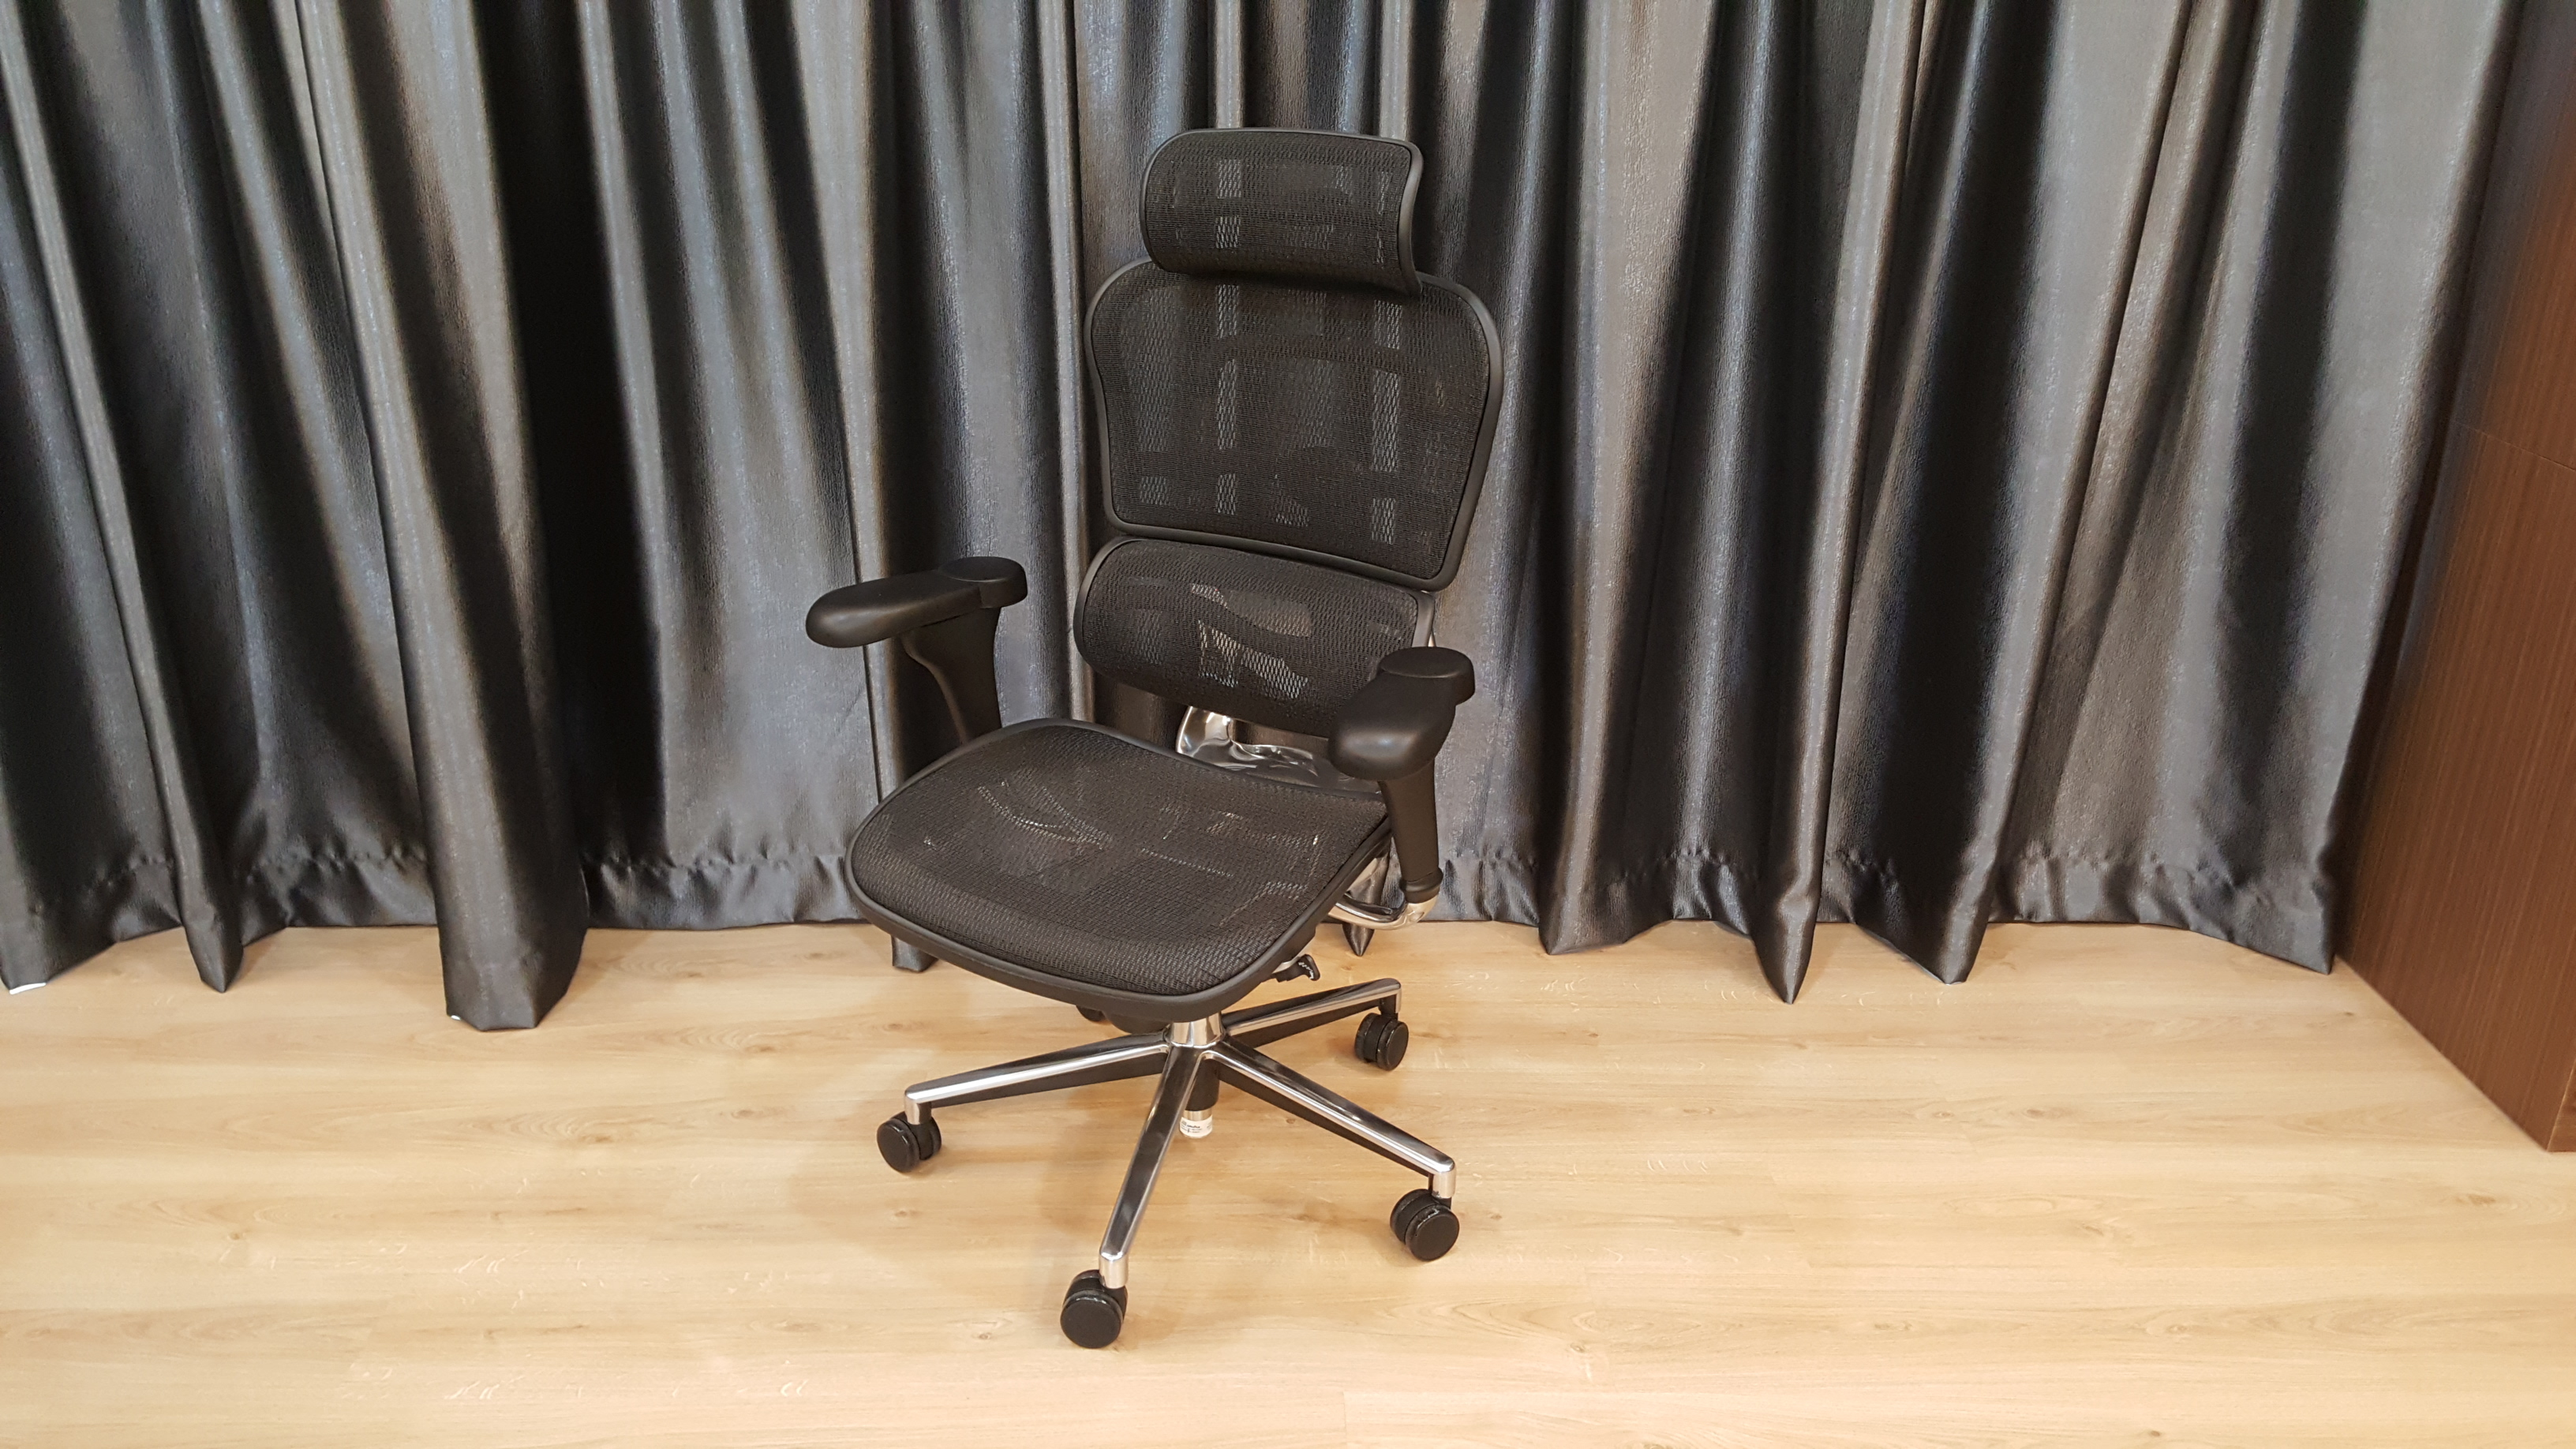 fac575f20a8 It took 10 minutes for the skillful worker to assemble the chair. Looks  perfect